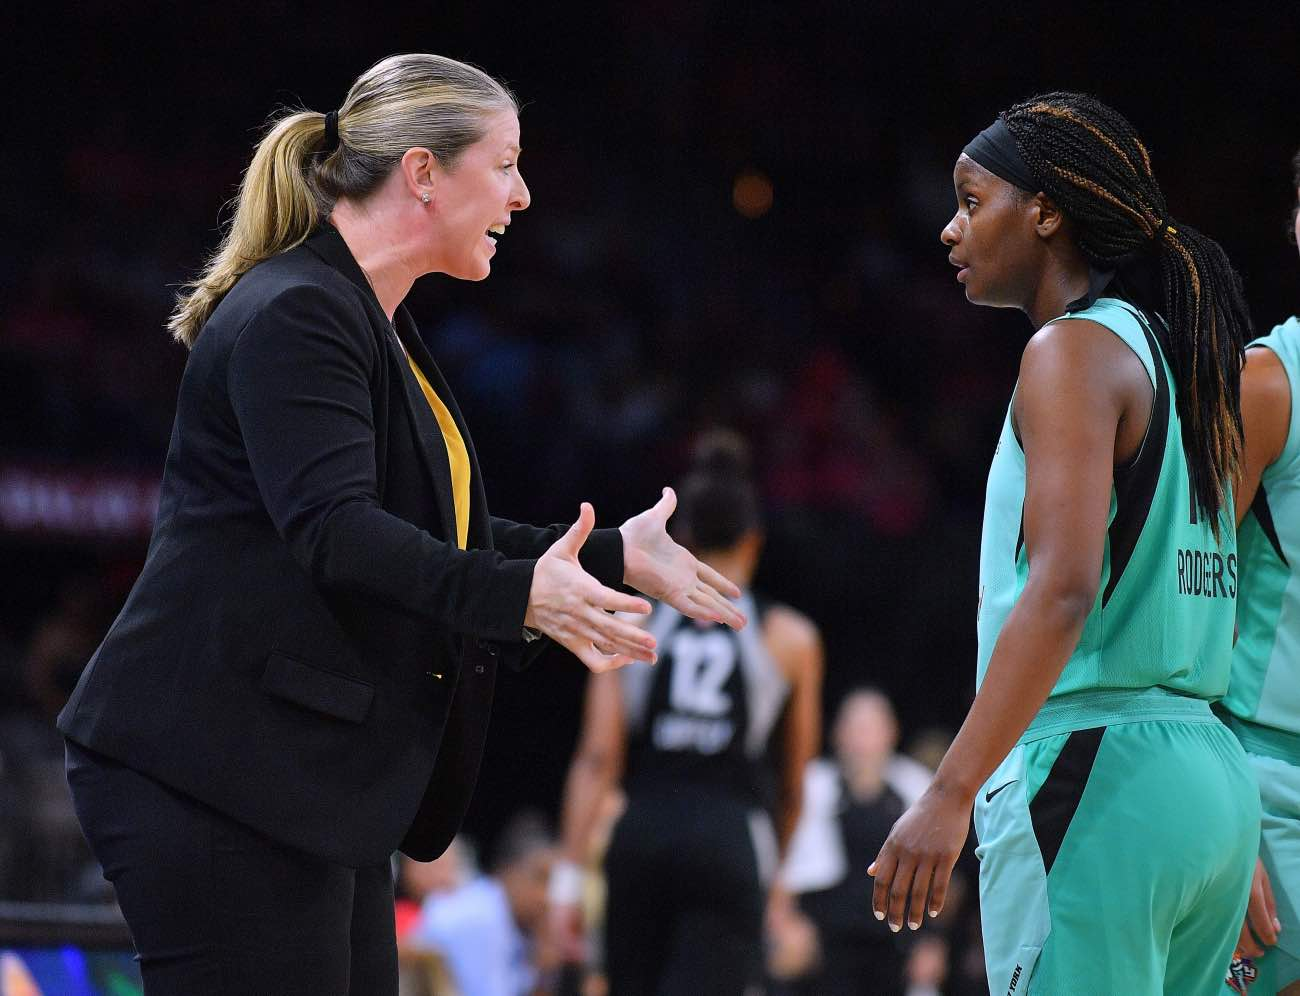 LAS VEGAS, NV - AUGUST 15: Head coach Katie Smith of the New York Liberty talks to Sugar Rodgers #14 of the New York Liberty during a timeout of their game against the Las Vegas Aces at the Mandalay Bay Events Center on August 15, 2018 in Las Vegas, Nevada. (Photo by Sam Wasson/Getty Images)